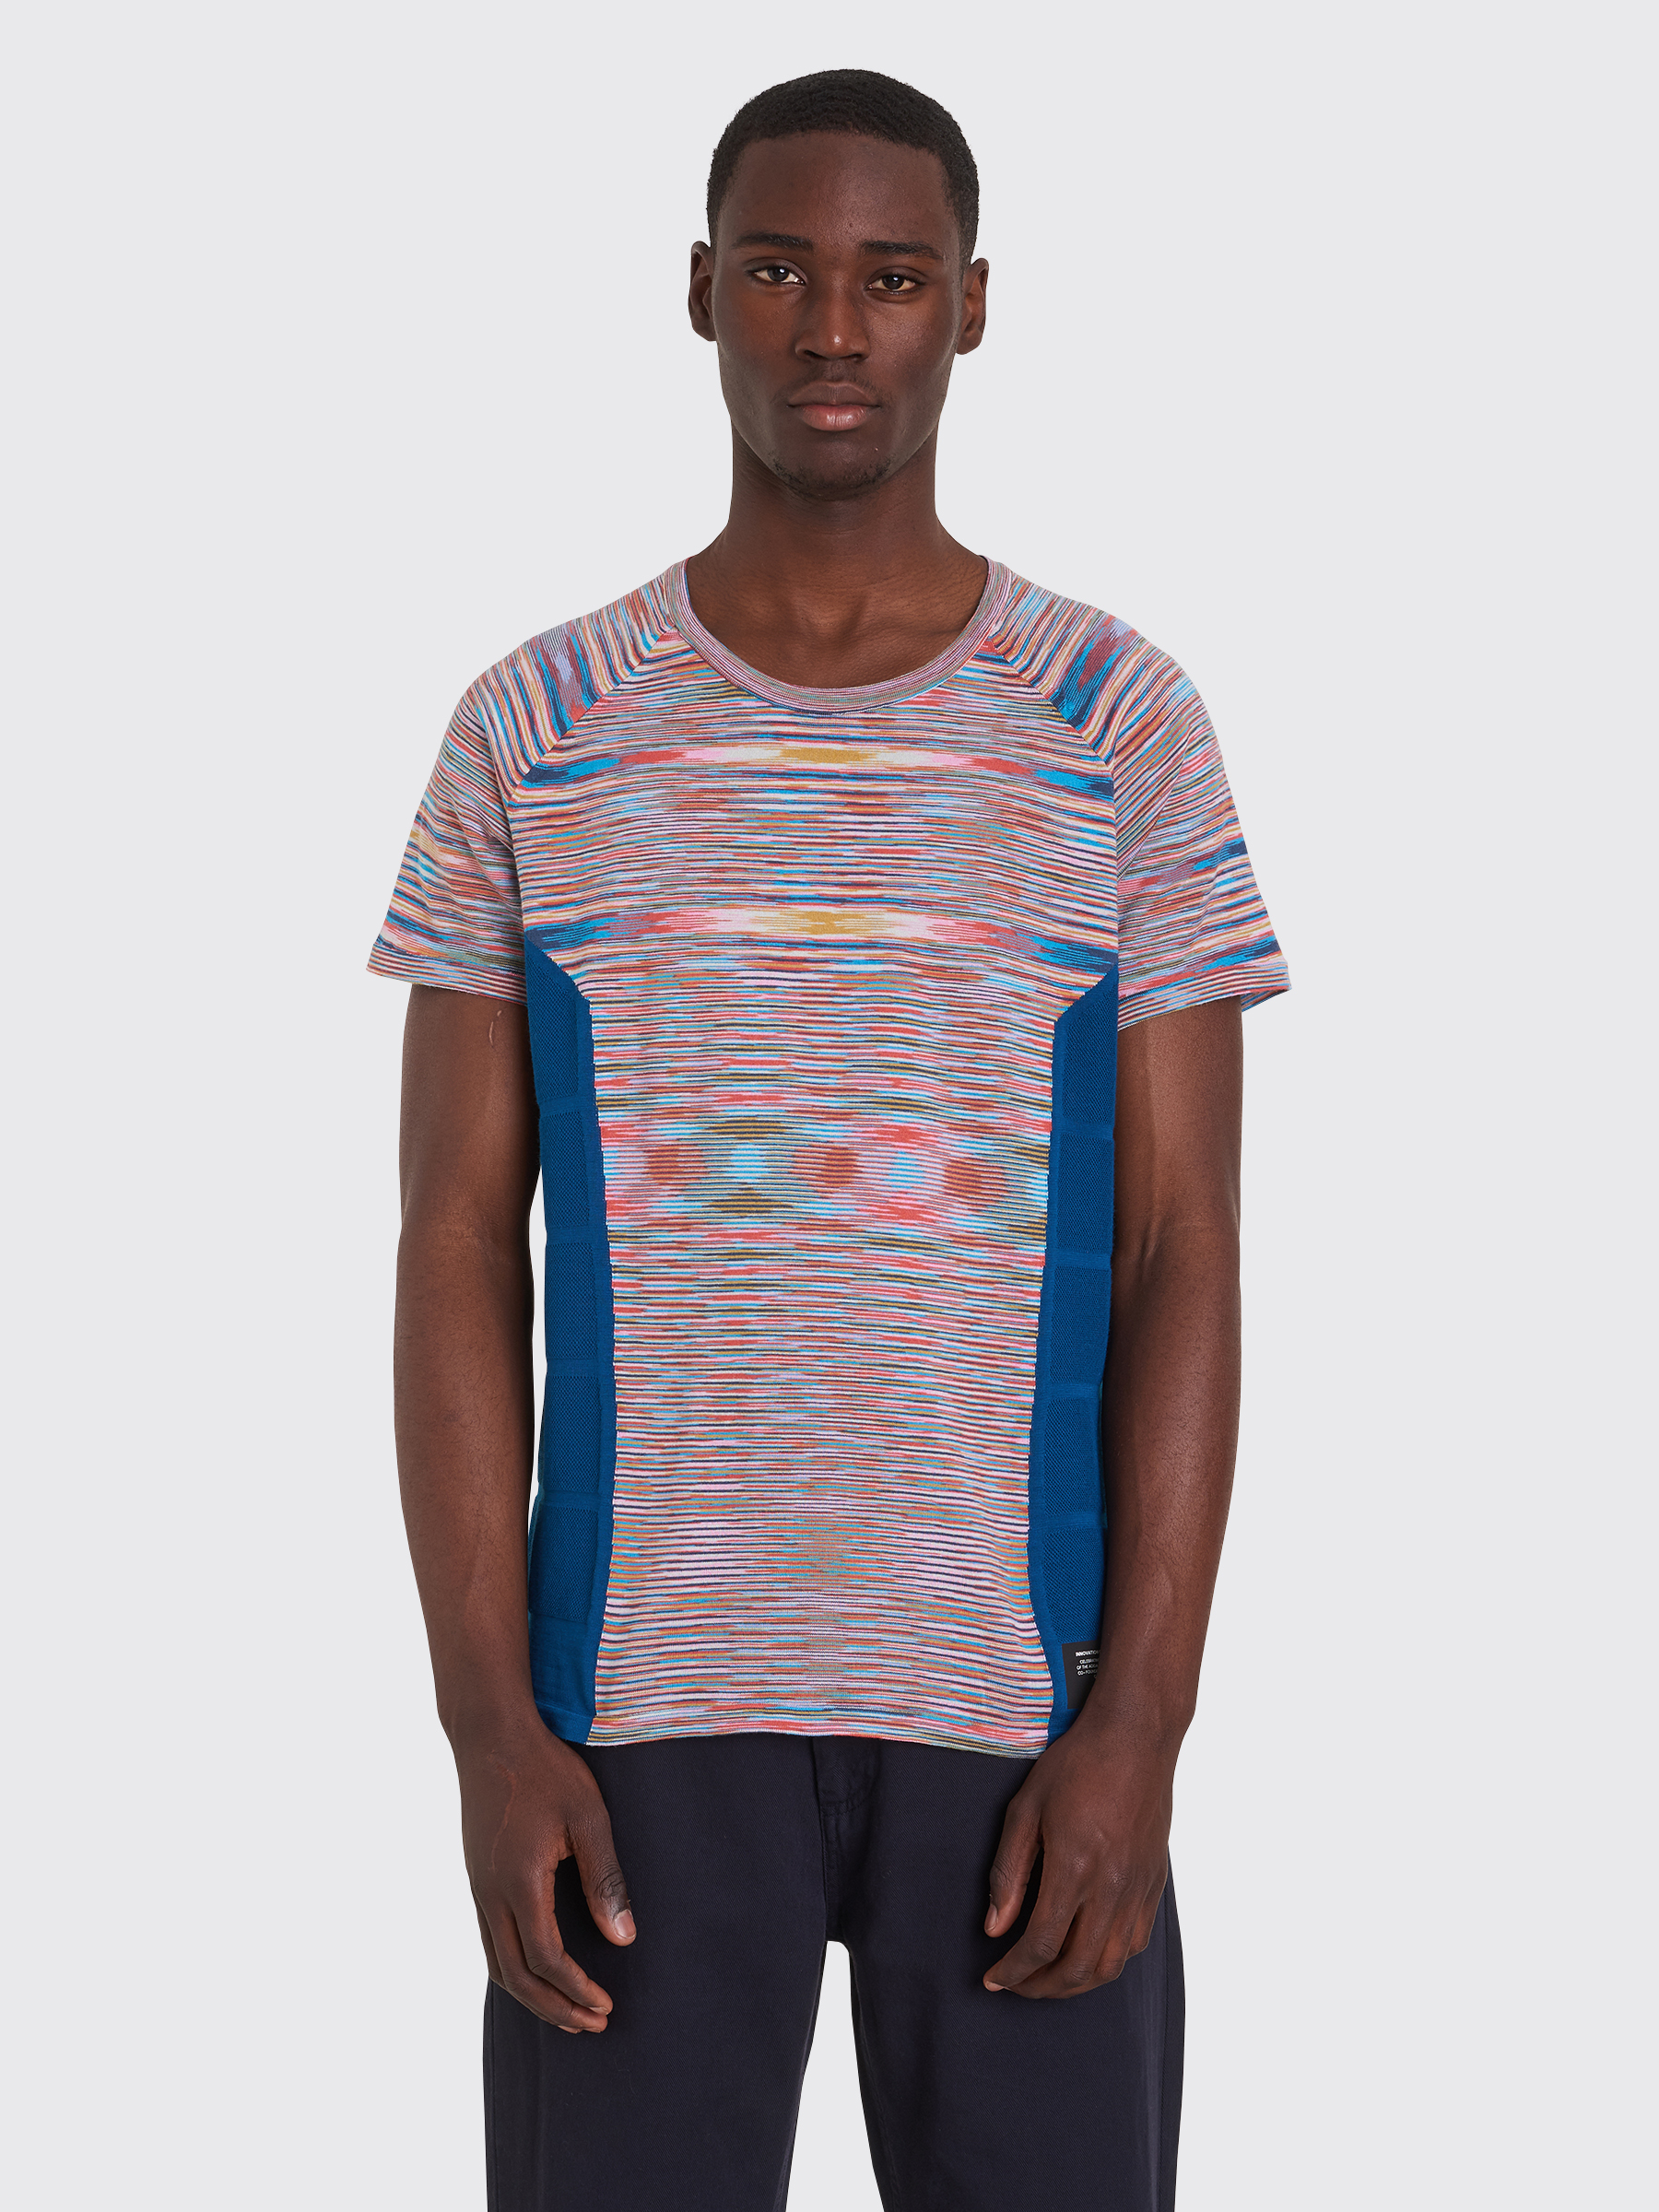 the latest c114d d2732 Très Bien - adidas x Missoni Supernova T-shirt Multicolor